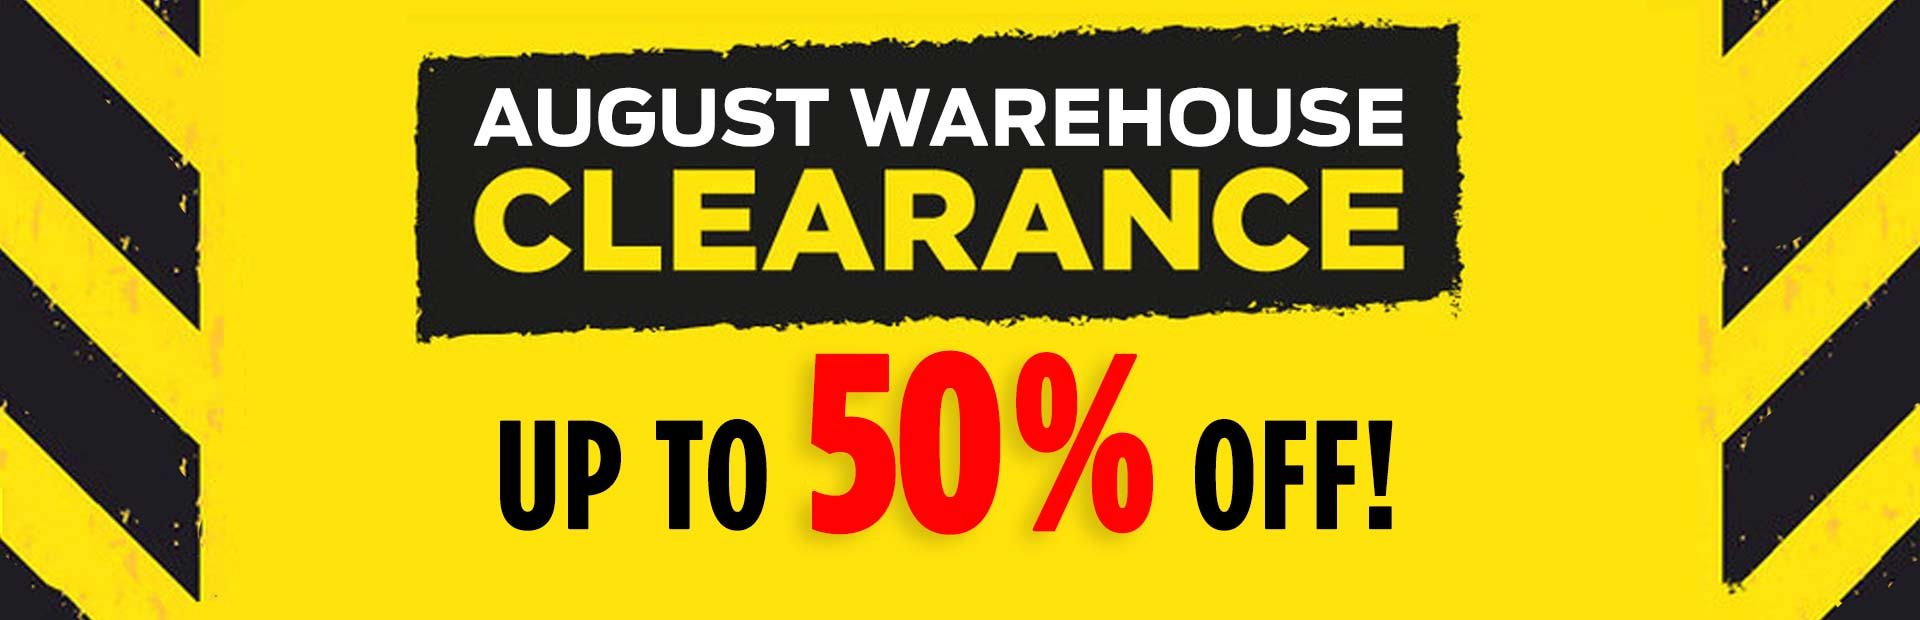 Our August Warehouse CLEARANCE event is our biggest sale of the year! NOW is the time to take advantage of these incredible savings!